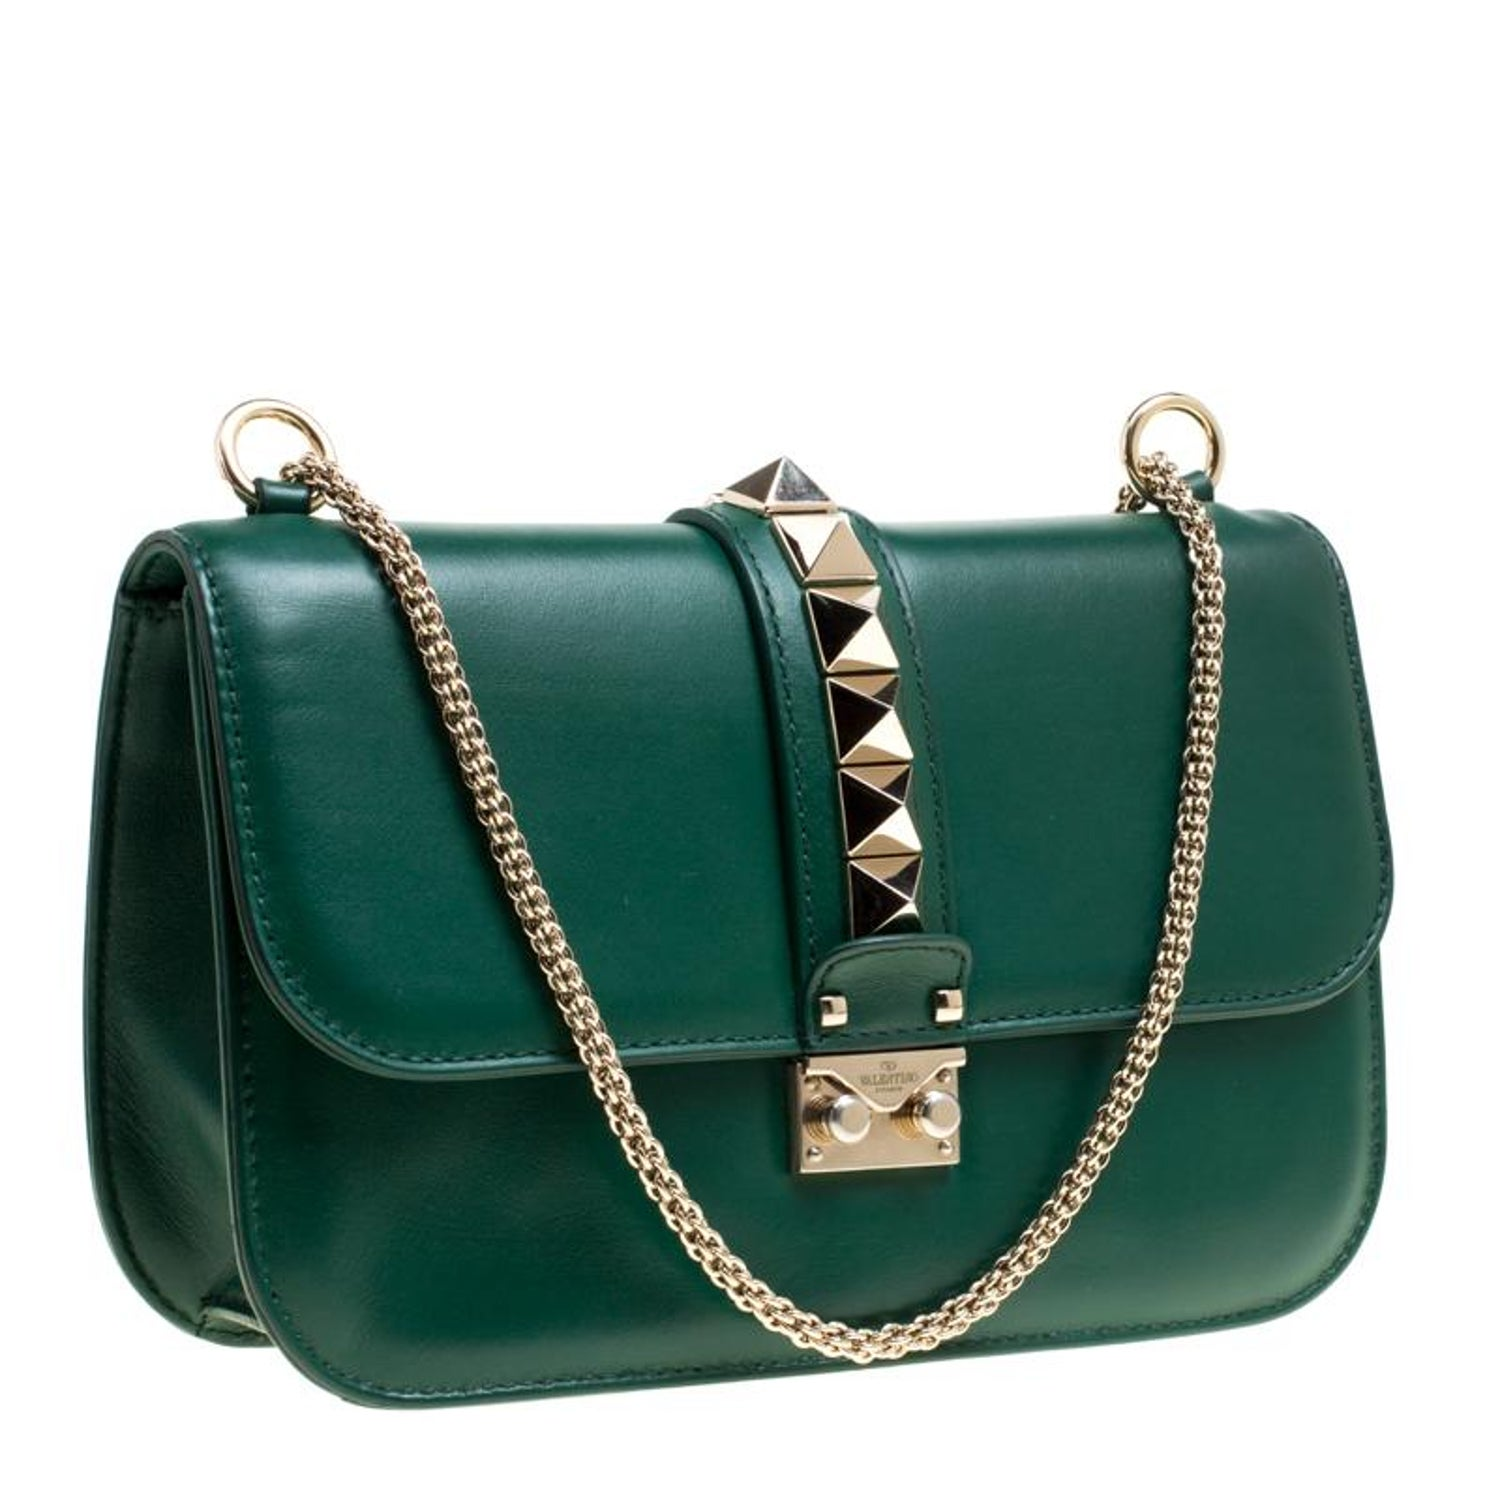 c481dc13d Valentino Green Leather Rockstud Medium Glam Lock Flap Bag For Sale at  1stdibs